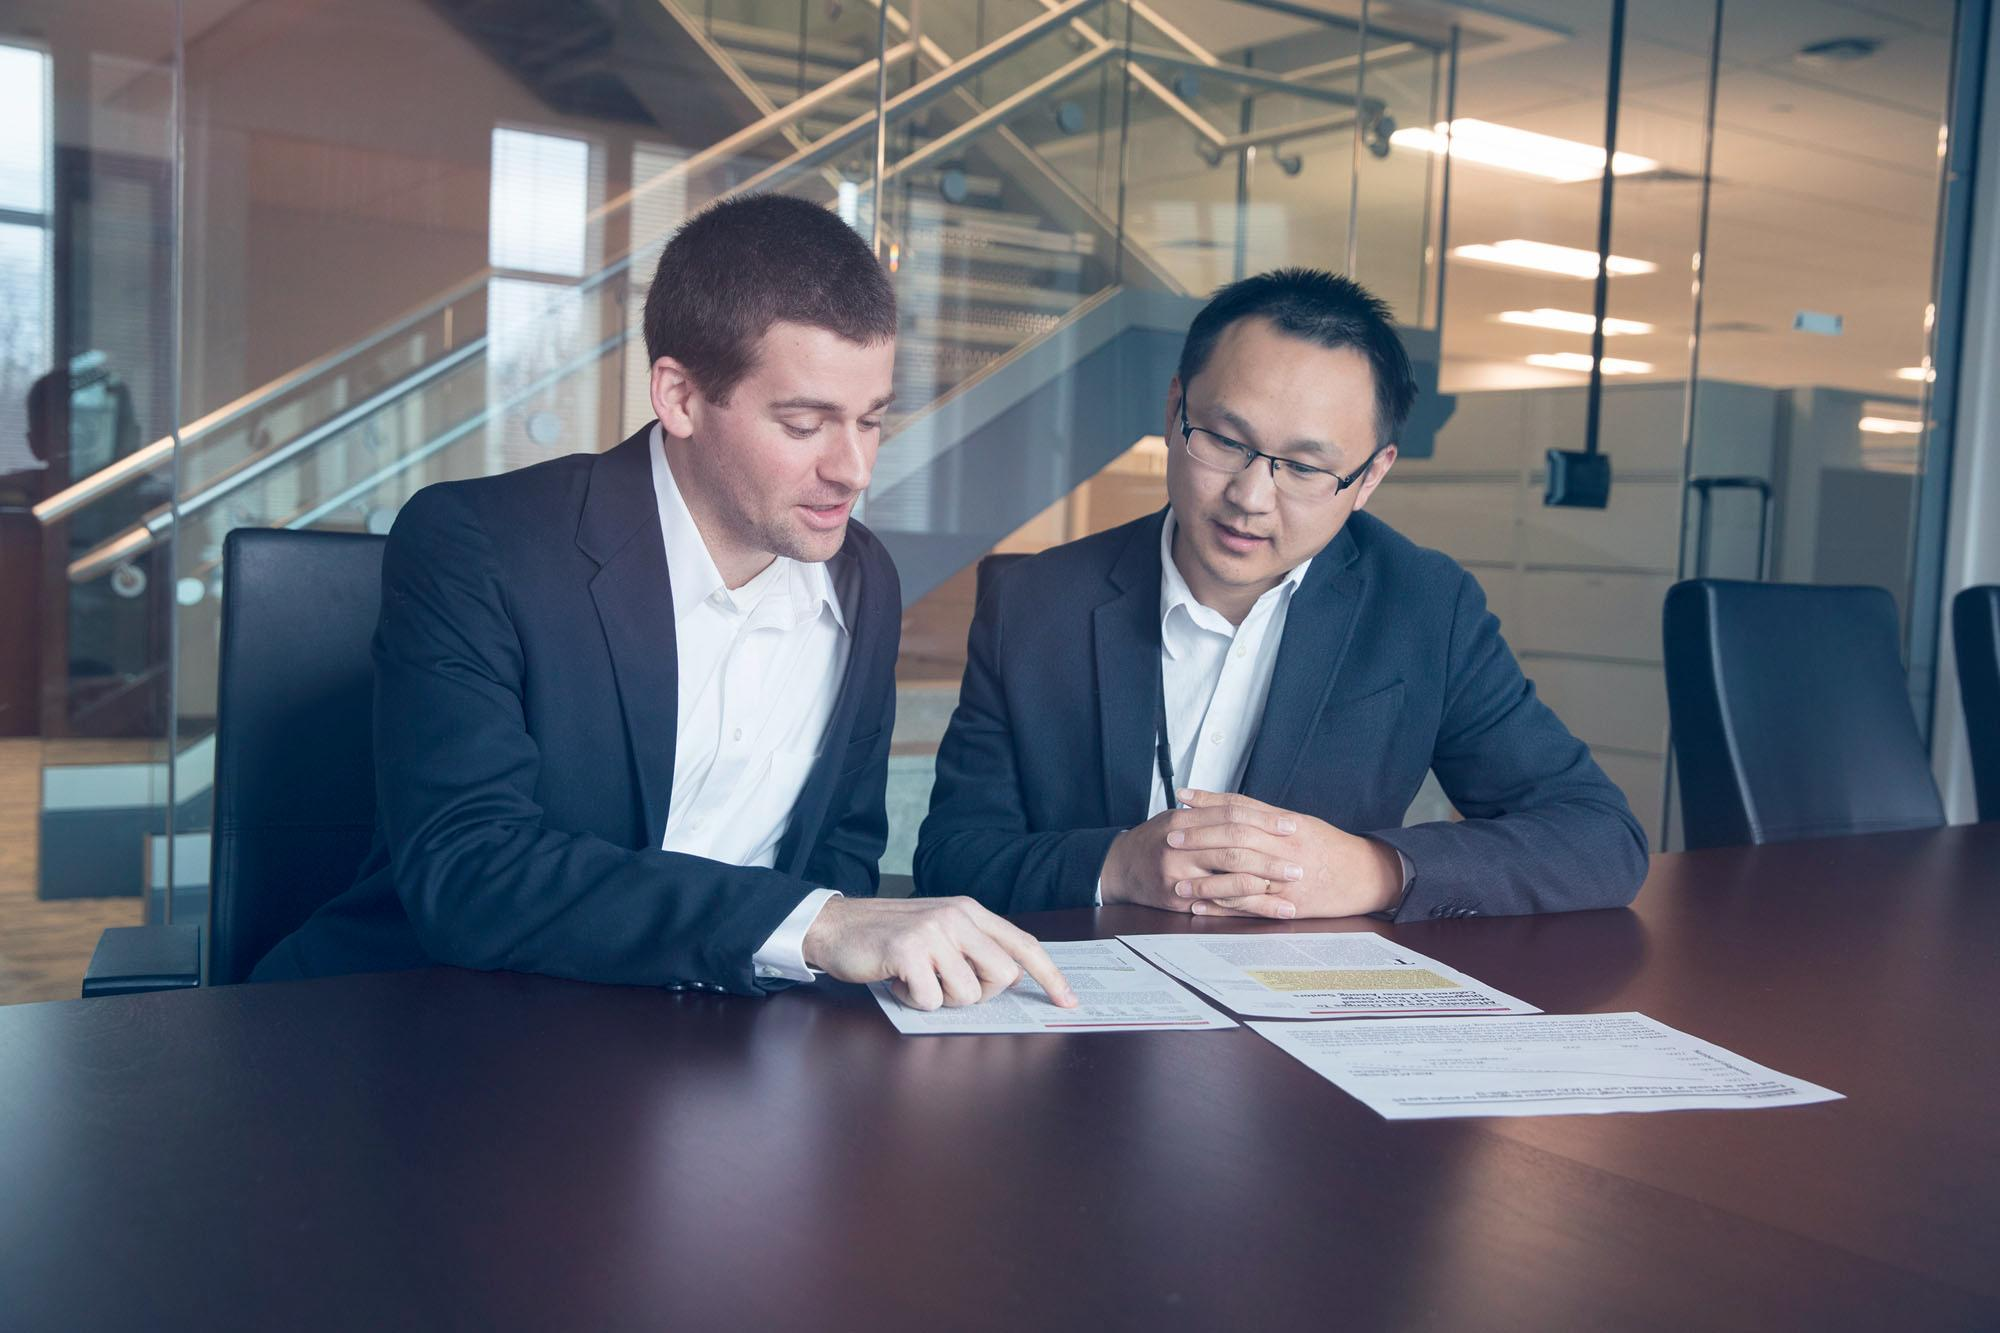 The study's coauthors are Brett Lissenden, a fifth-year student in UVA's economics Ph.D. program, and Aaron Yao, an assistant professor in the Department of Public Health Sciences.